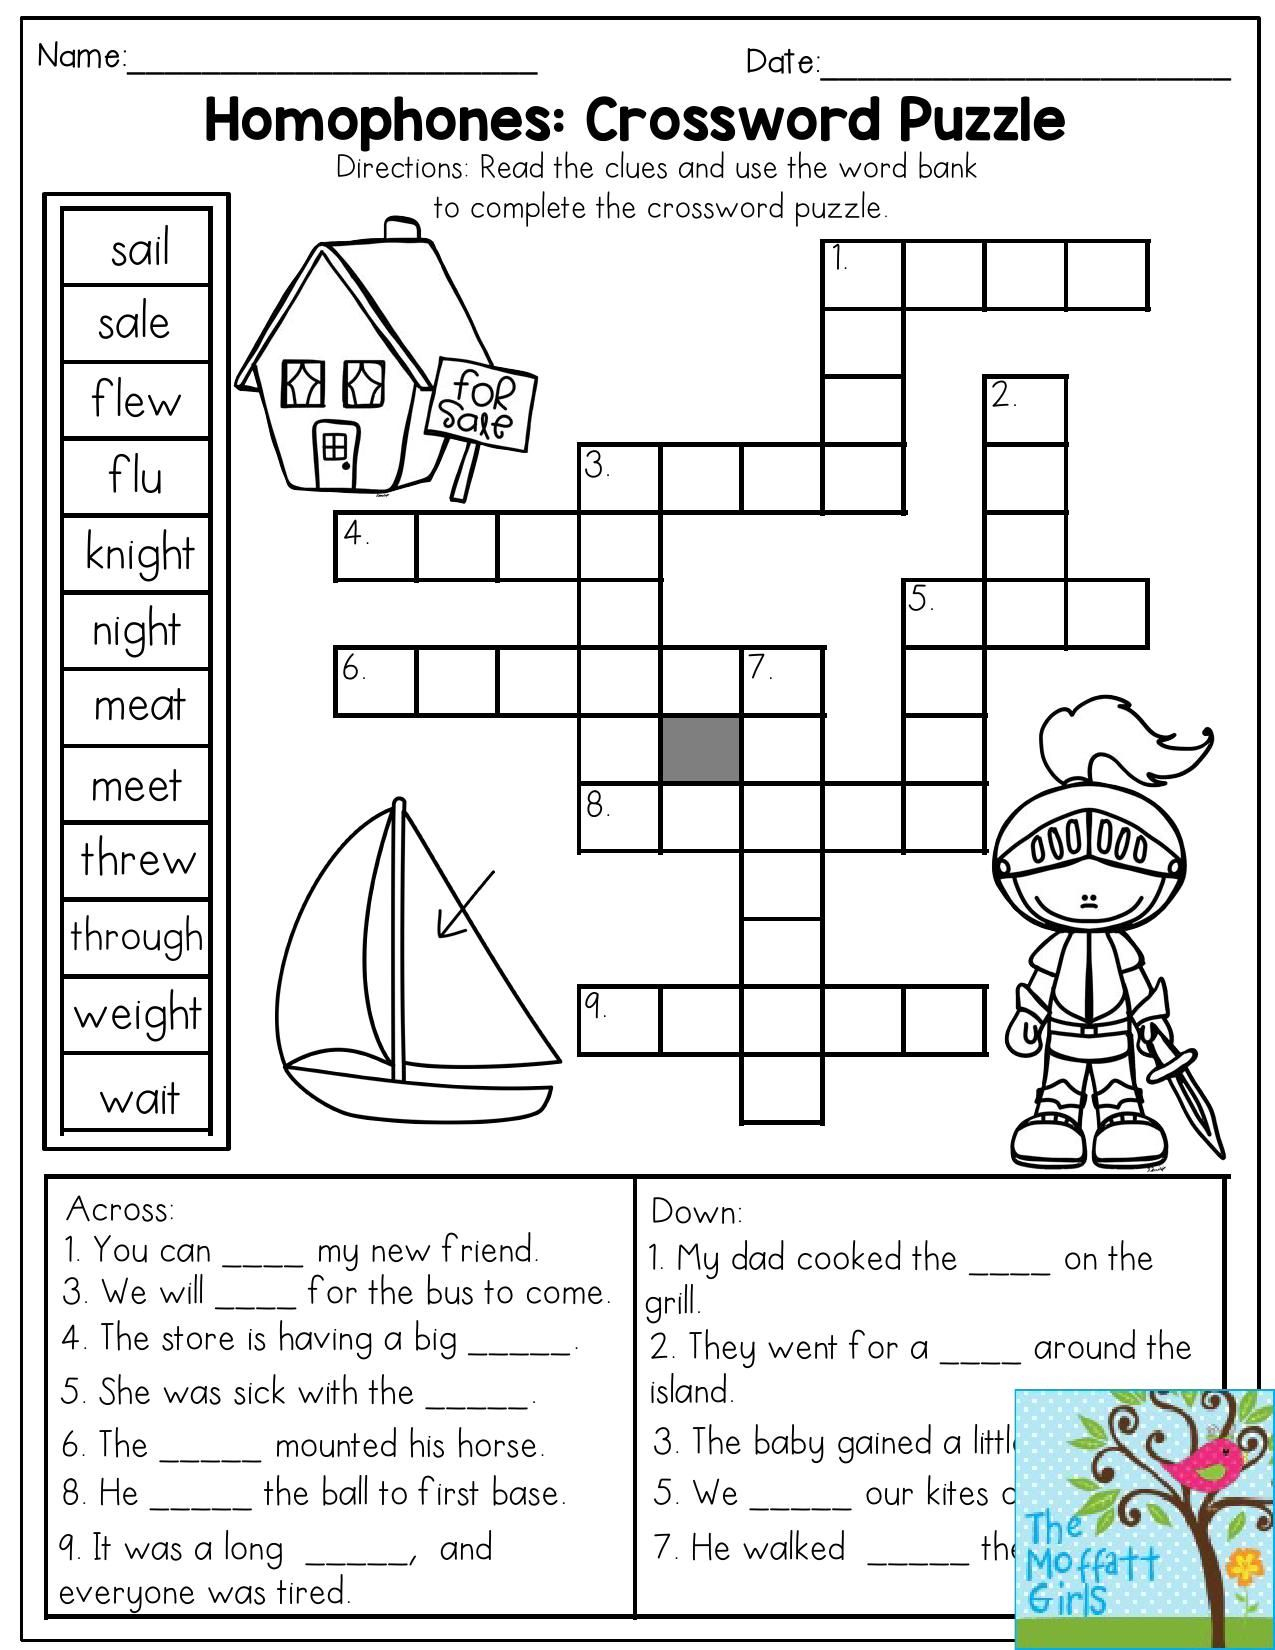 Homophones: Crossword Puzzle- Read The Clues And Use The Word Bank - Grade 1 Crossword Puzzles Printable